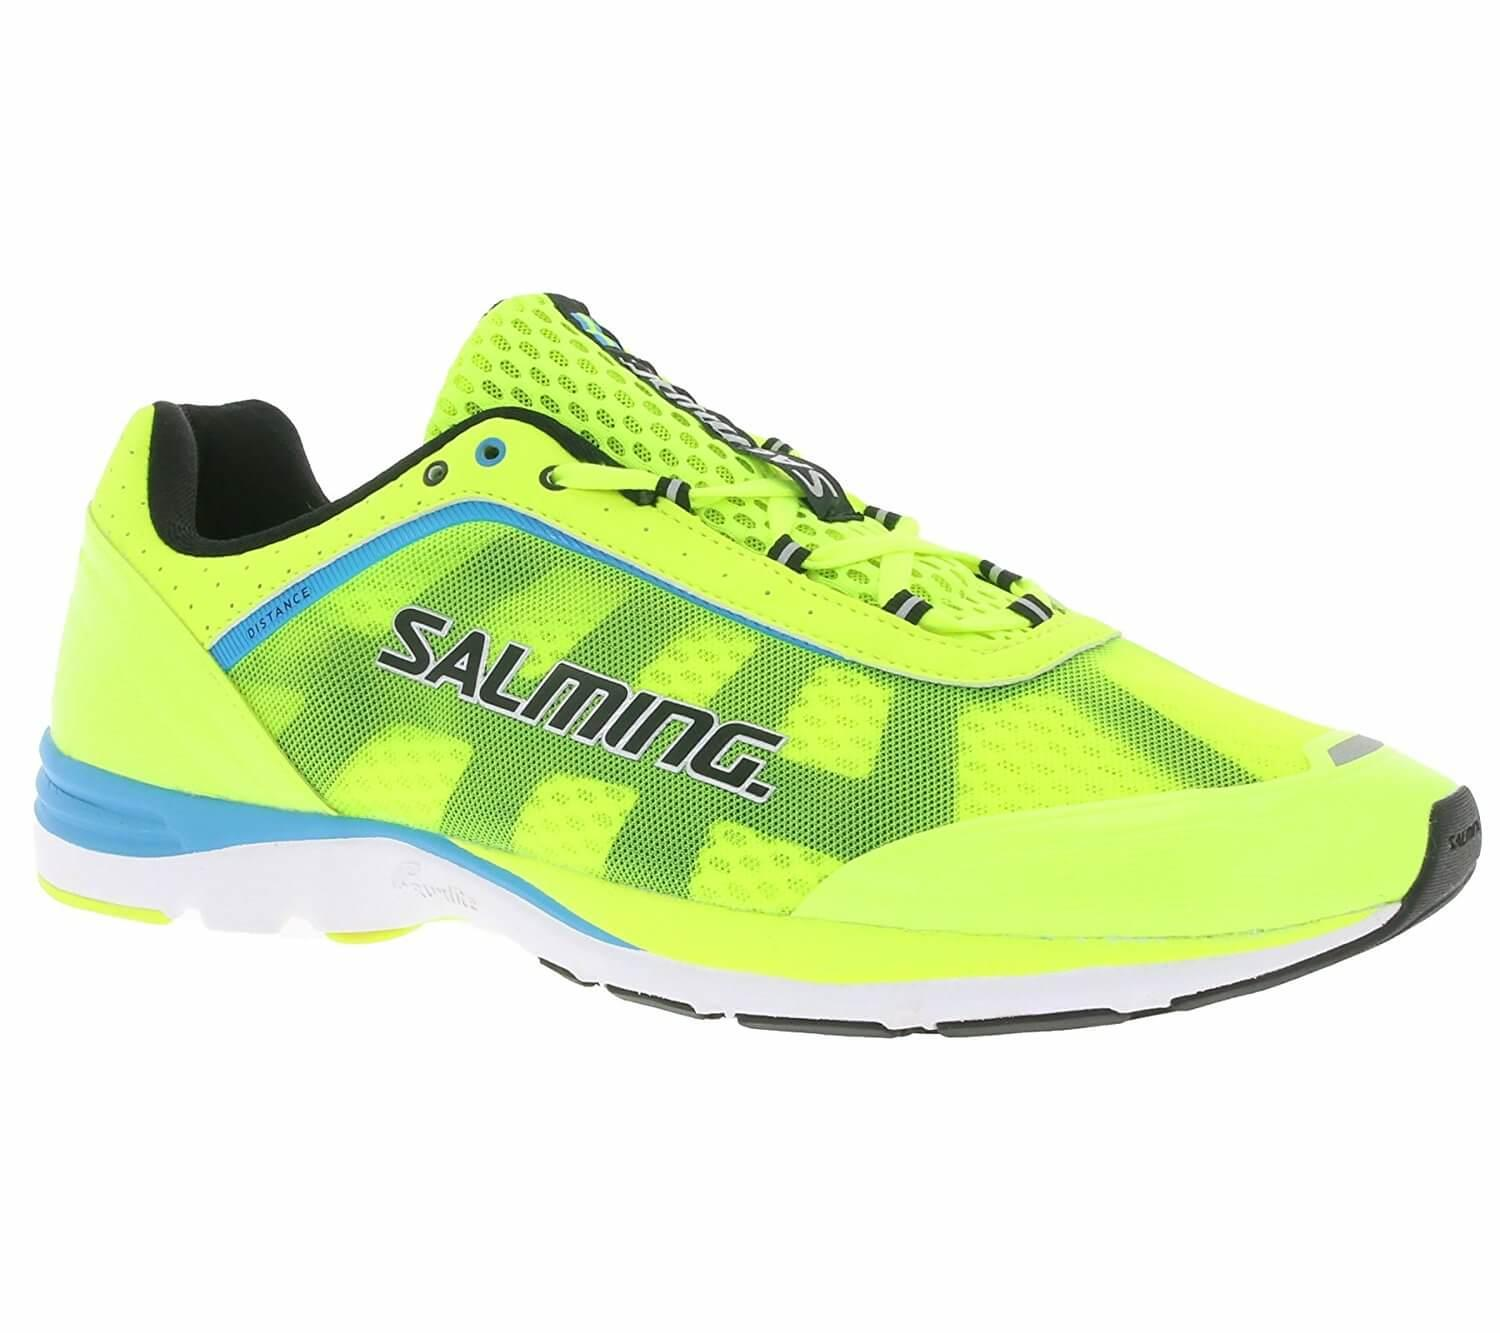 Best Neutral Running Shoes For Long Distance